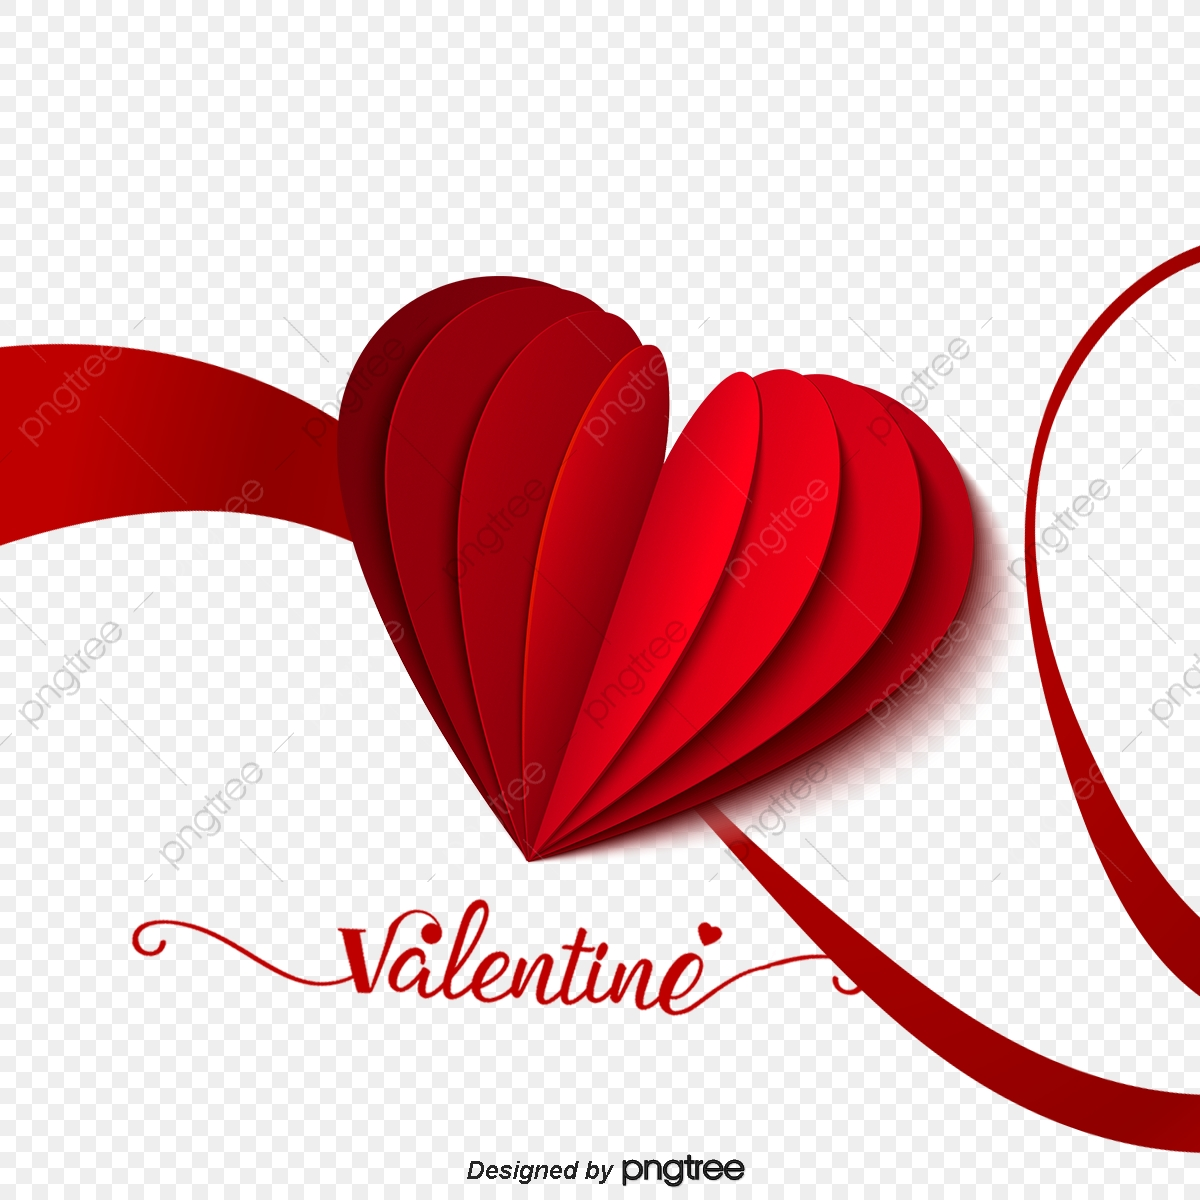 Valentines Day Png Images Vector And Psd Files Free Download On Pngtree